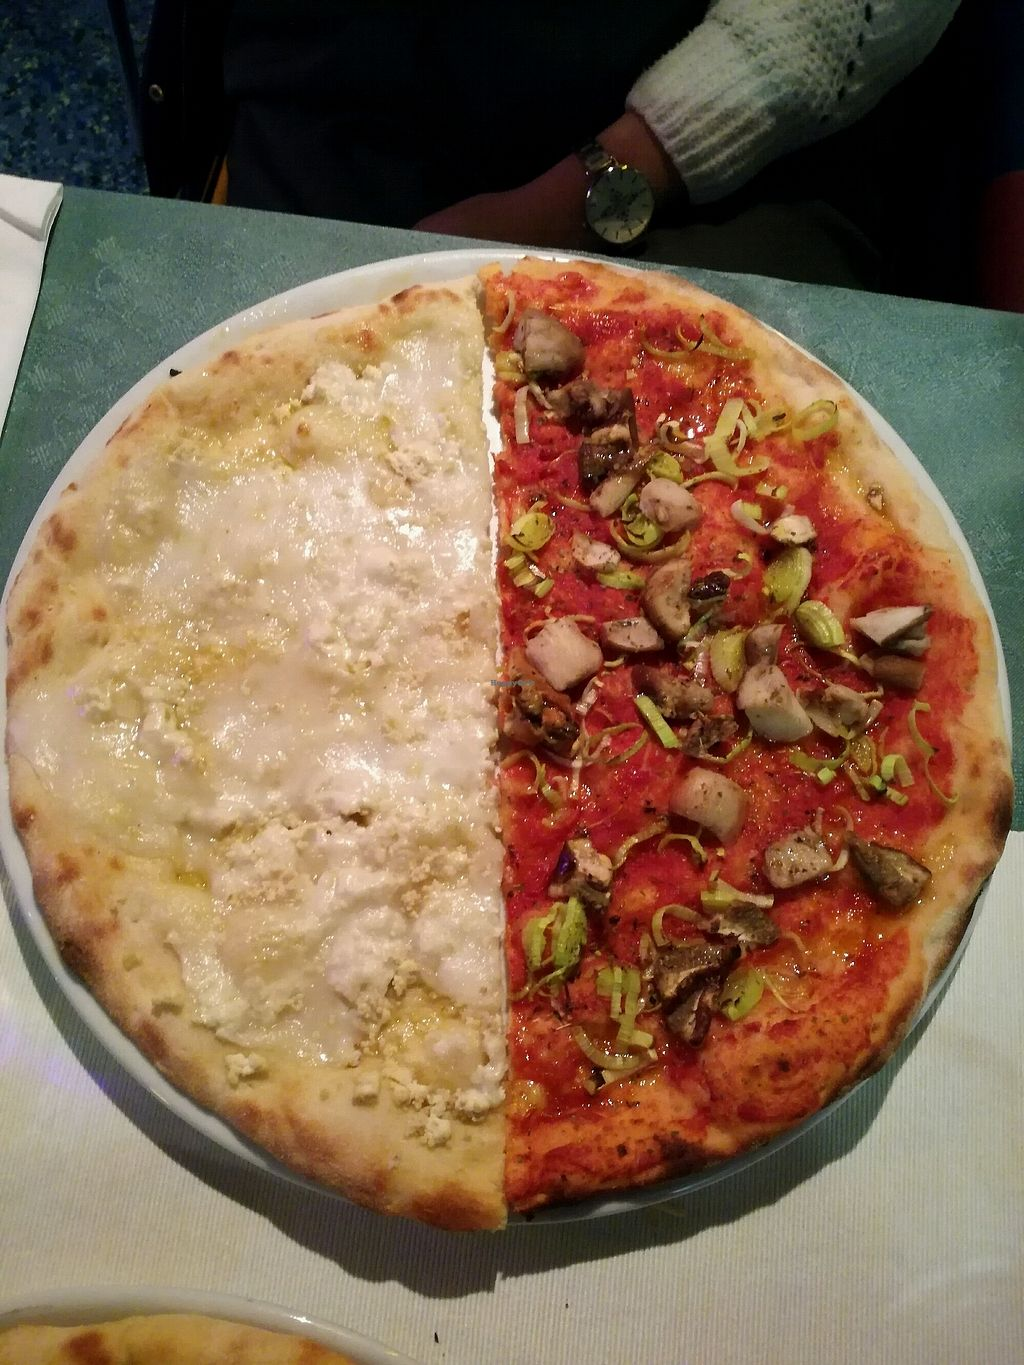 "Photo of Veganfruttariano  by <a href=""/members/profile/B%C3%A1rbaraPatr%C3%ADcio"">BárbaraPatrício</a> <br/>4 cheese and porcini pizza <br/> February 3, 2018  - <a href='/contact/abuse/image/101127/354600'>Report</a>"